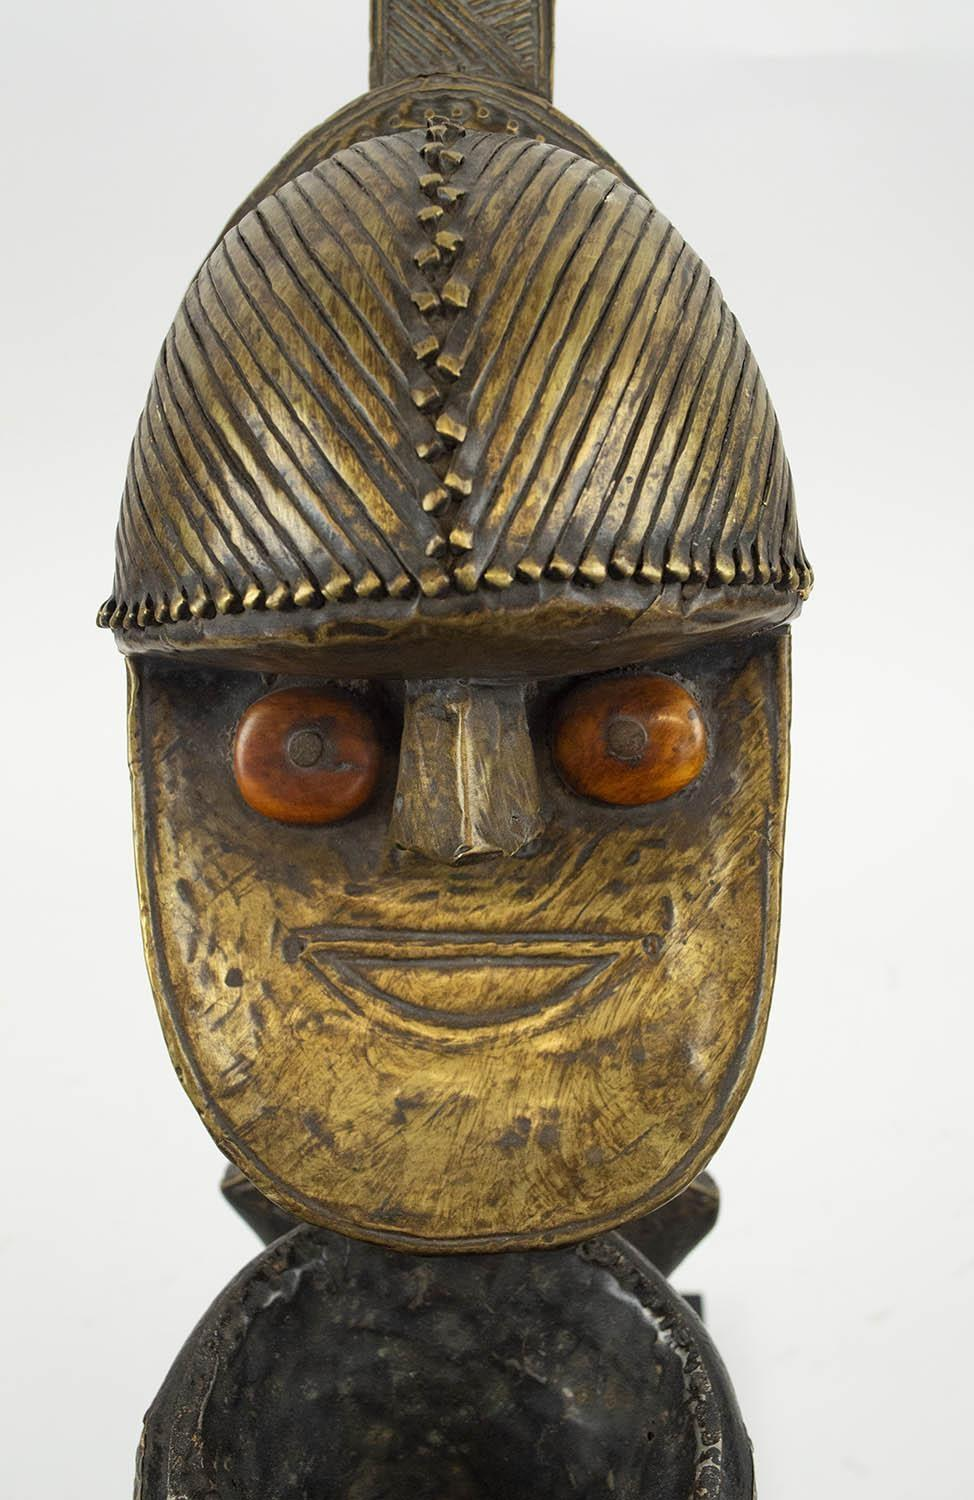 KOBA PEOPLE'S PIPE, from Gabon, copper and carved wood, 55cm H. - Image 3 of 4